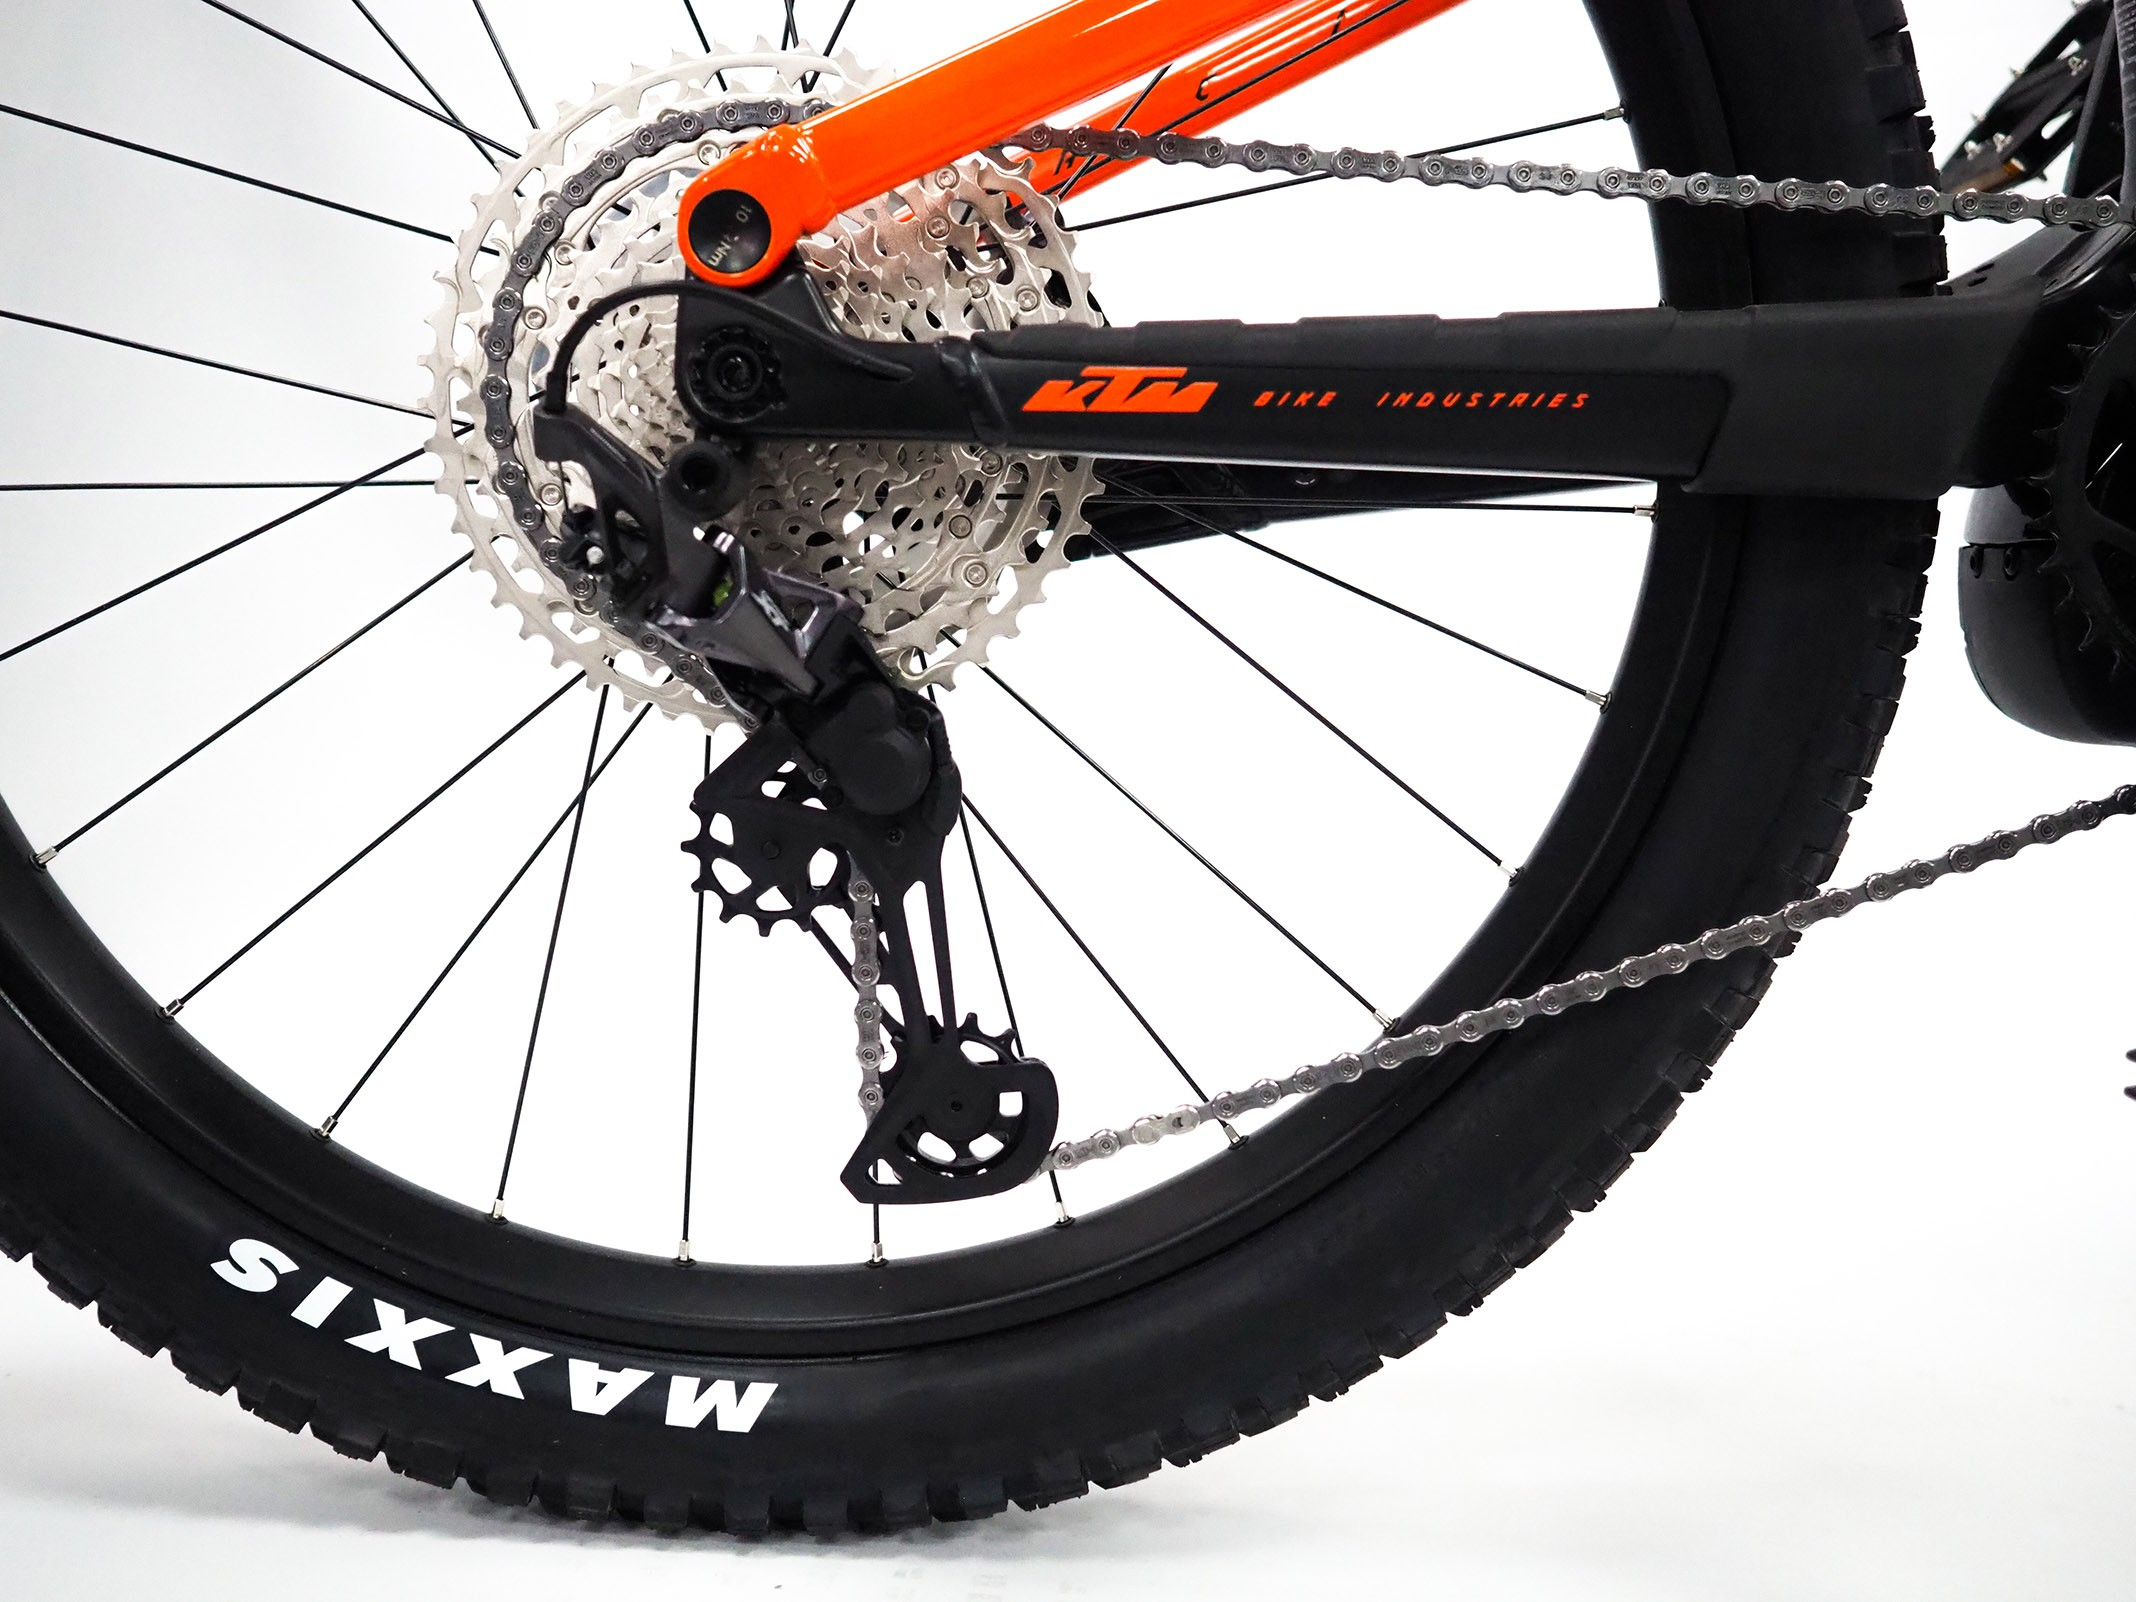 https://w8w5m3f8.stackpathcdn.com/22828-thickbox_extralarge/vtt-electrique-ktm-macina-prowler-master.jpg